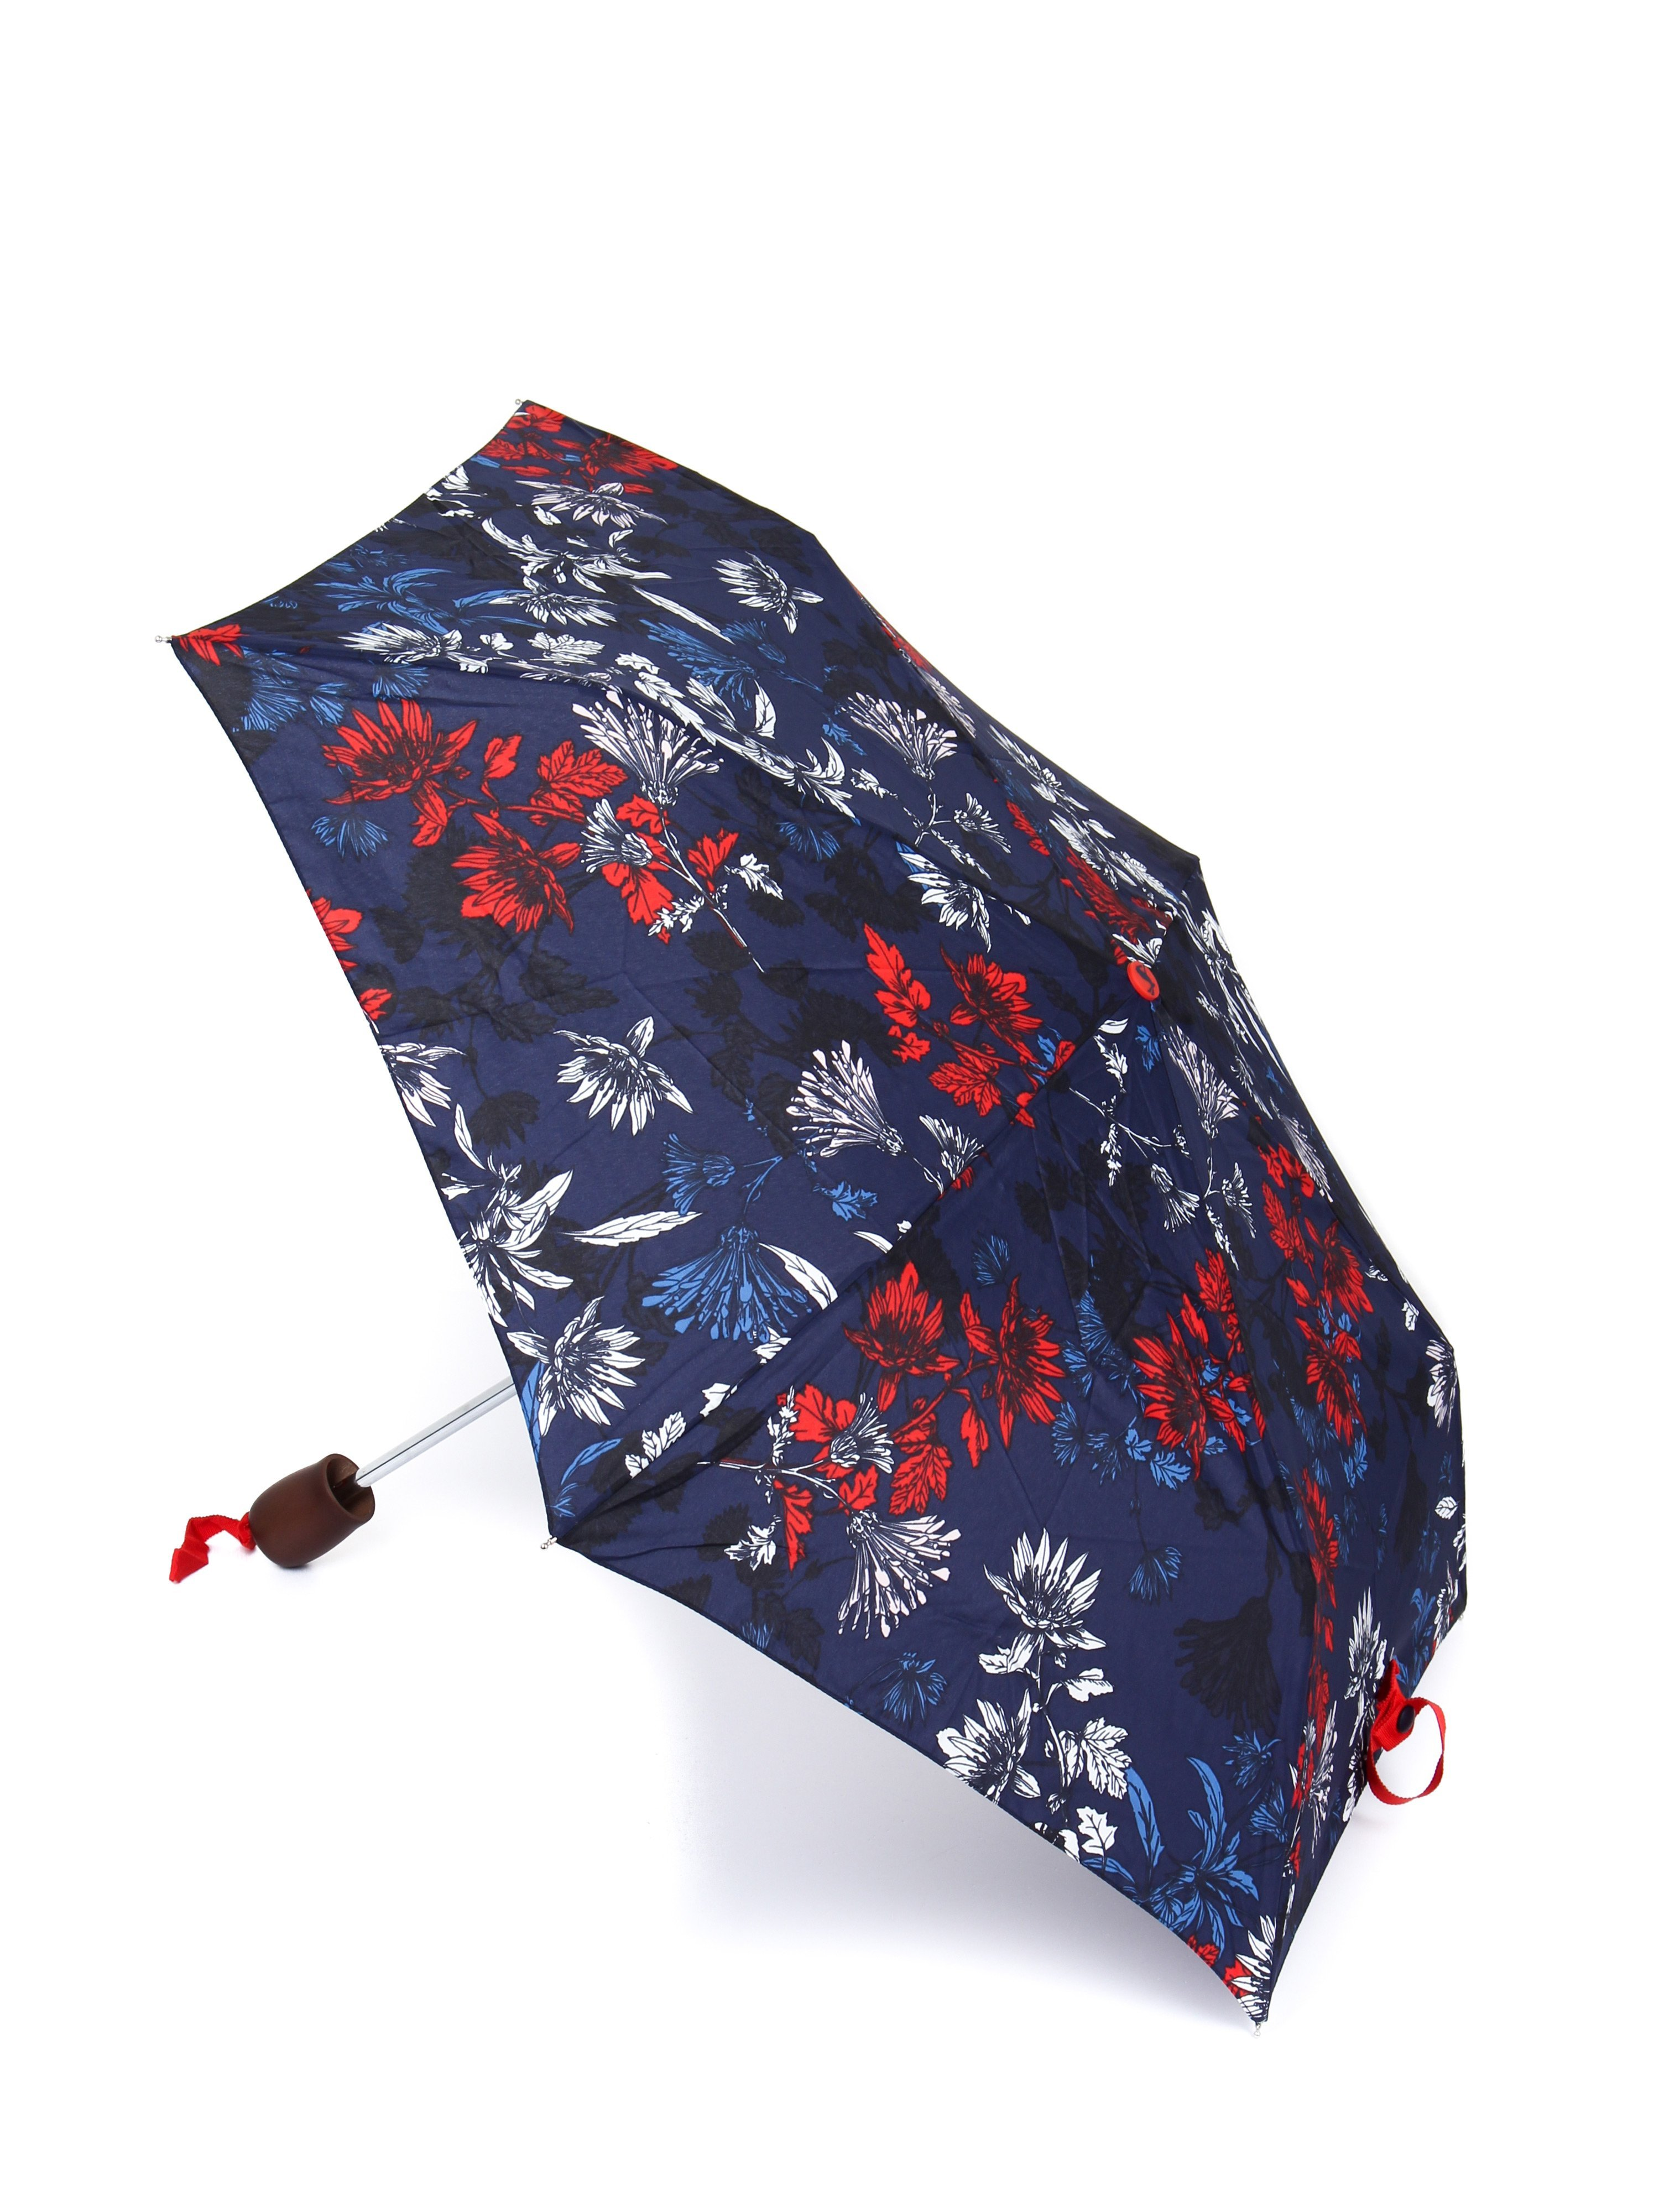 Joules Women's Floral Print Umbrella - French Navy